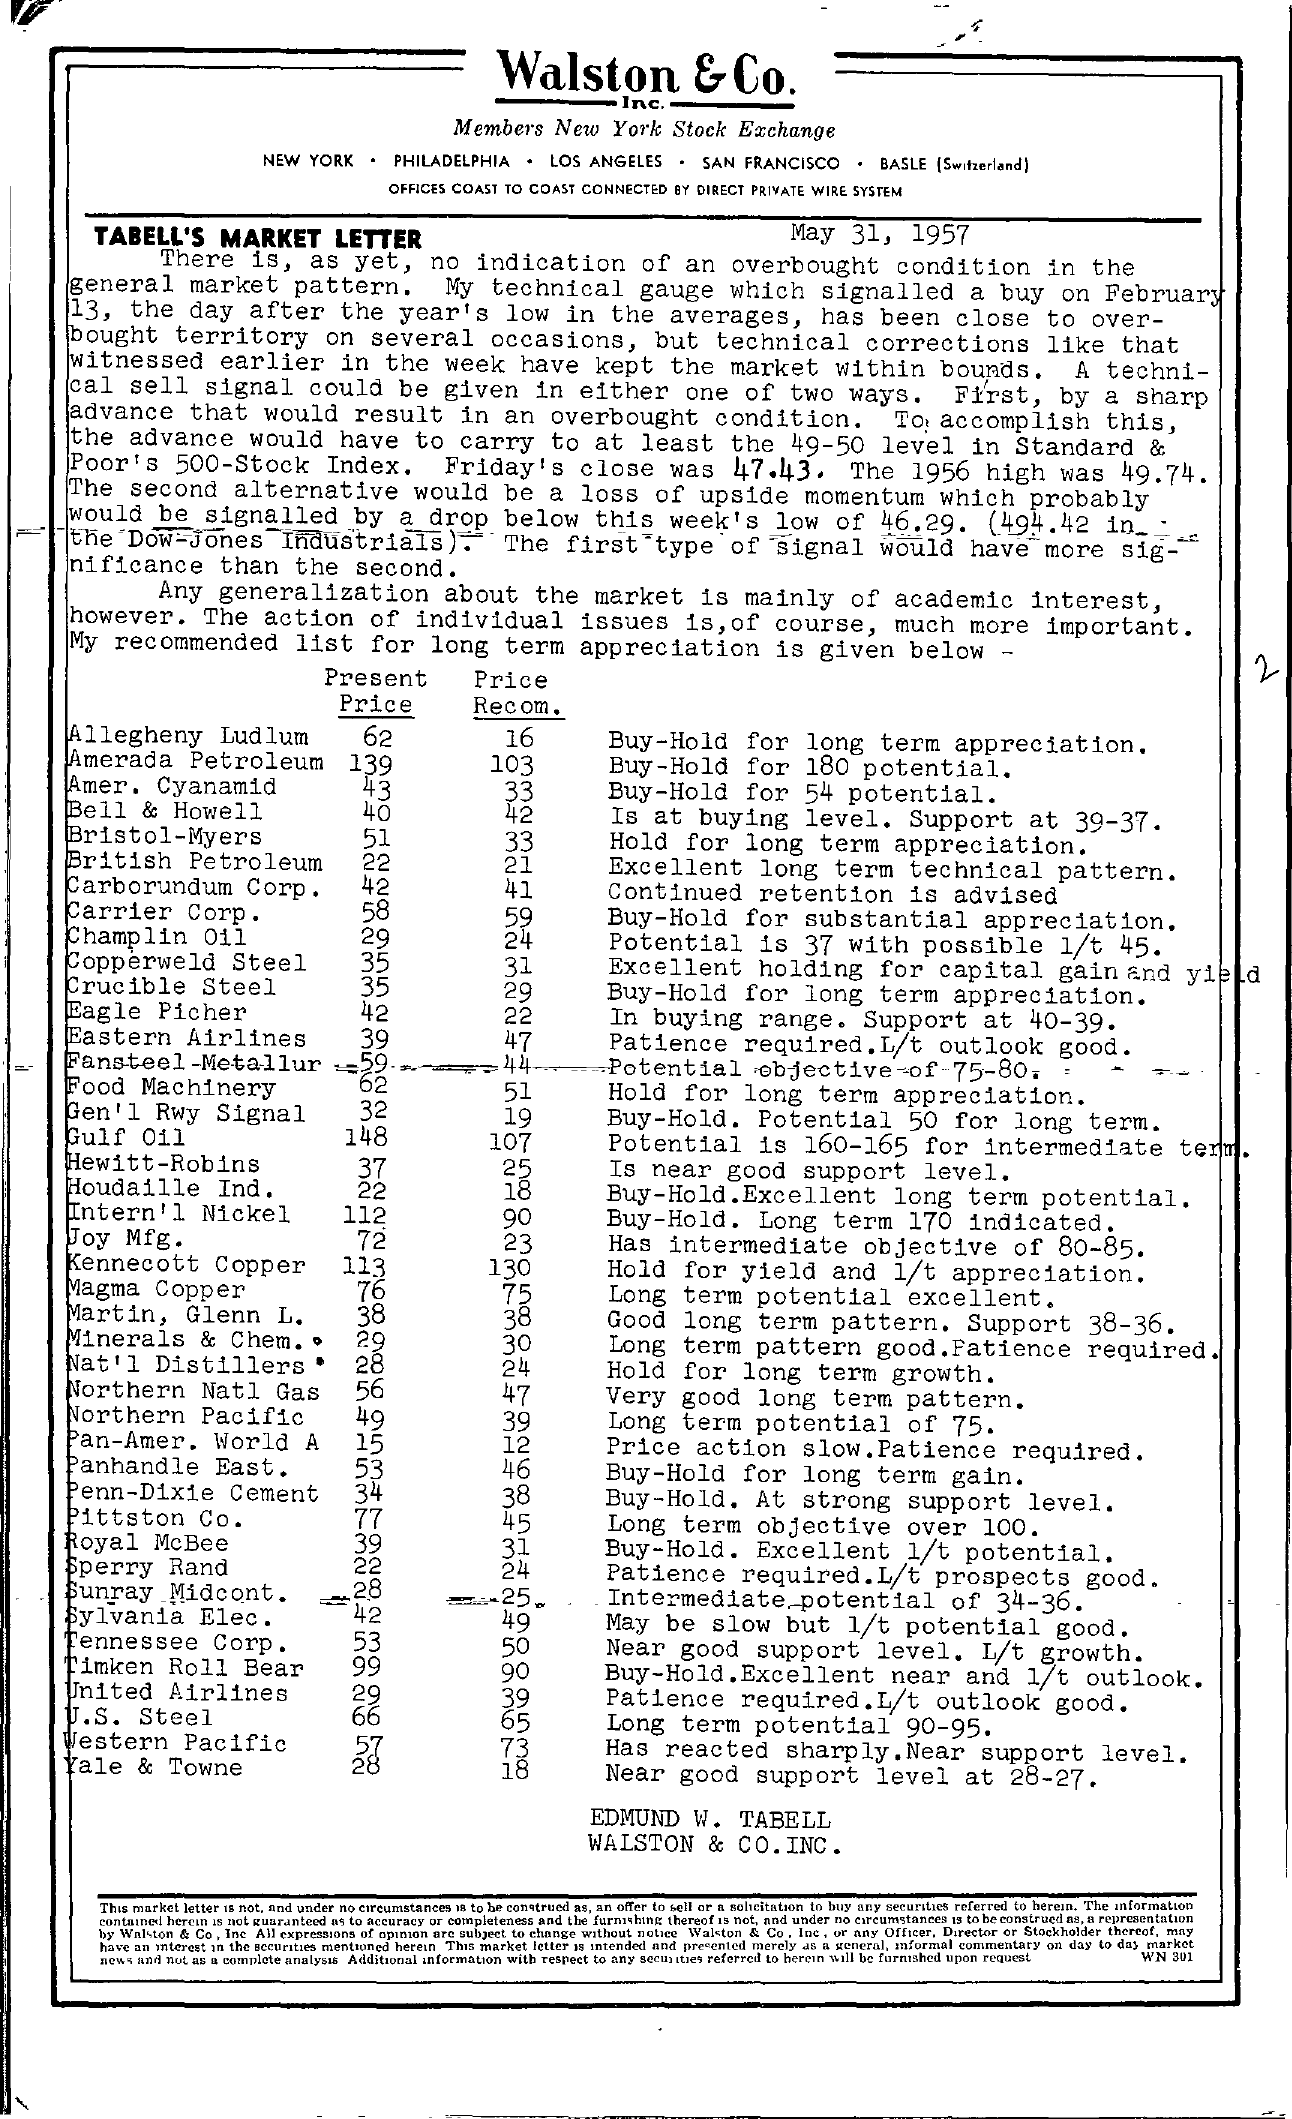 Tabell's Market Letter - May 31, 1957